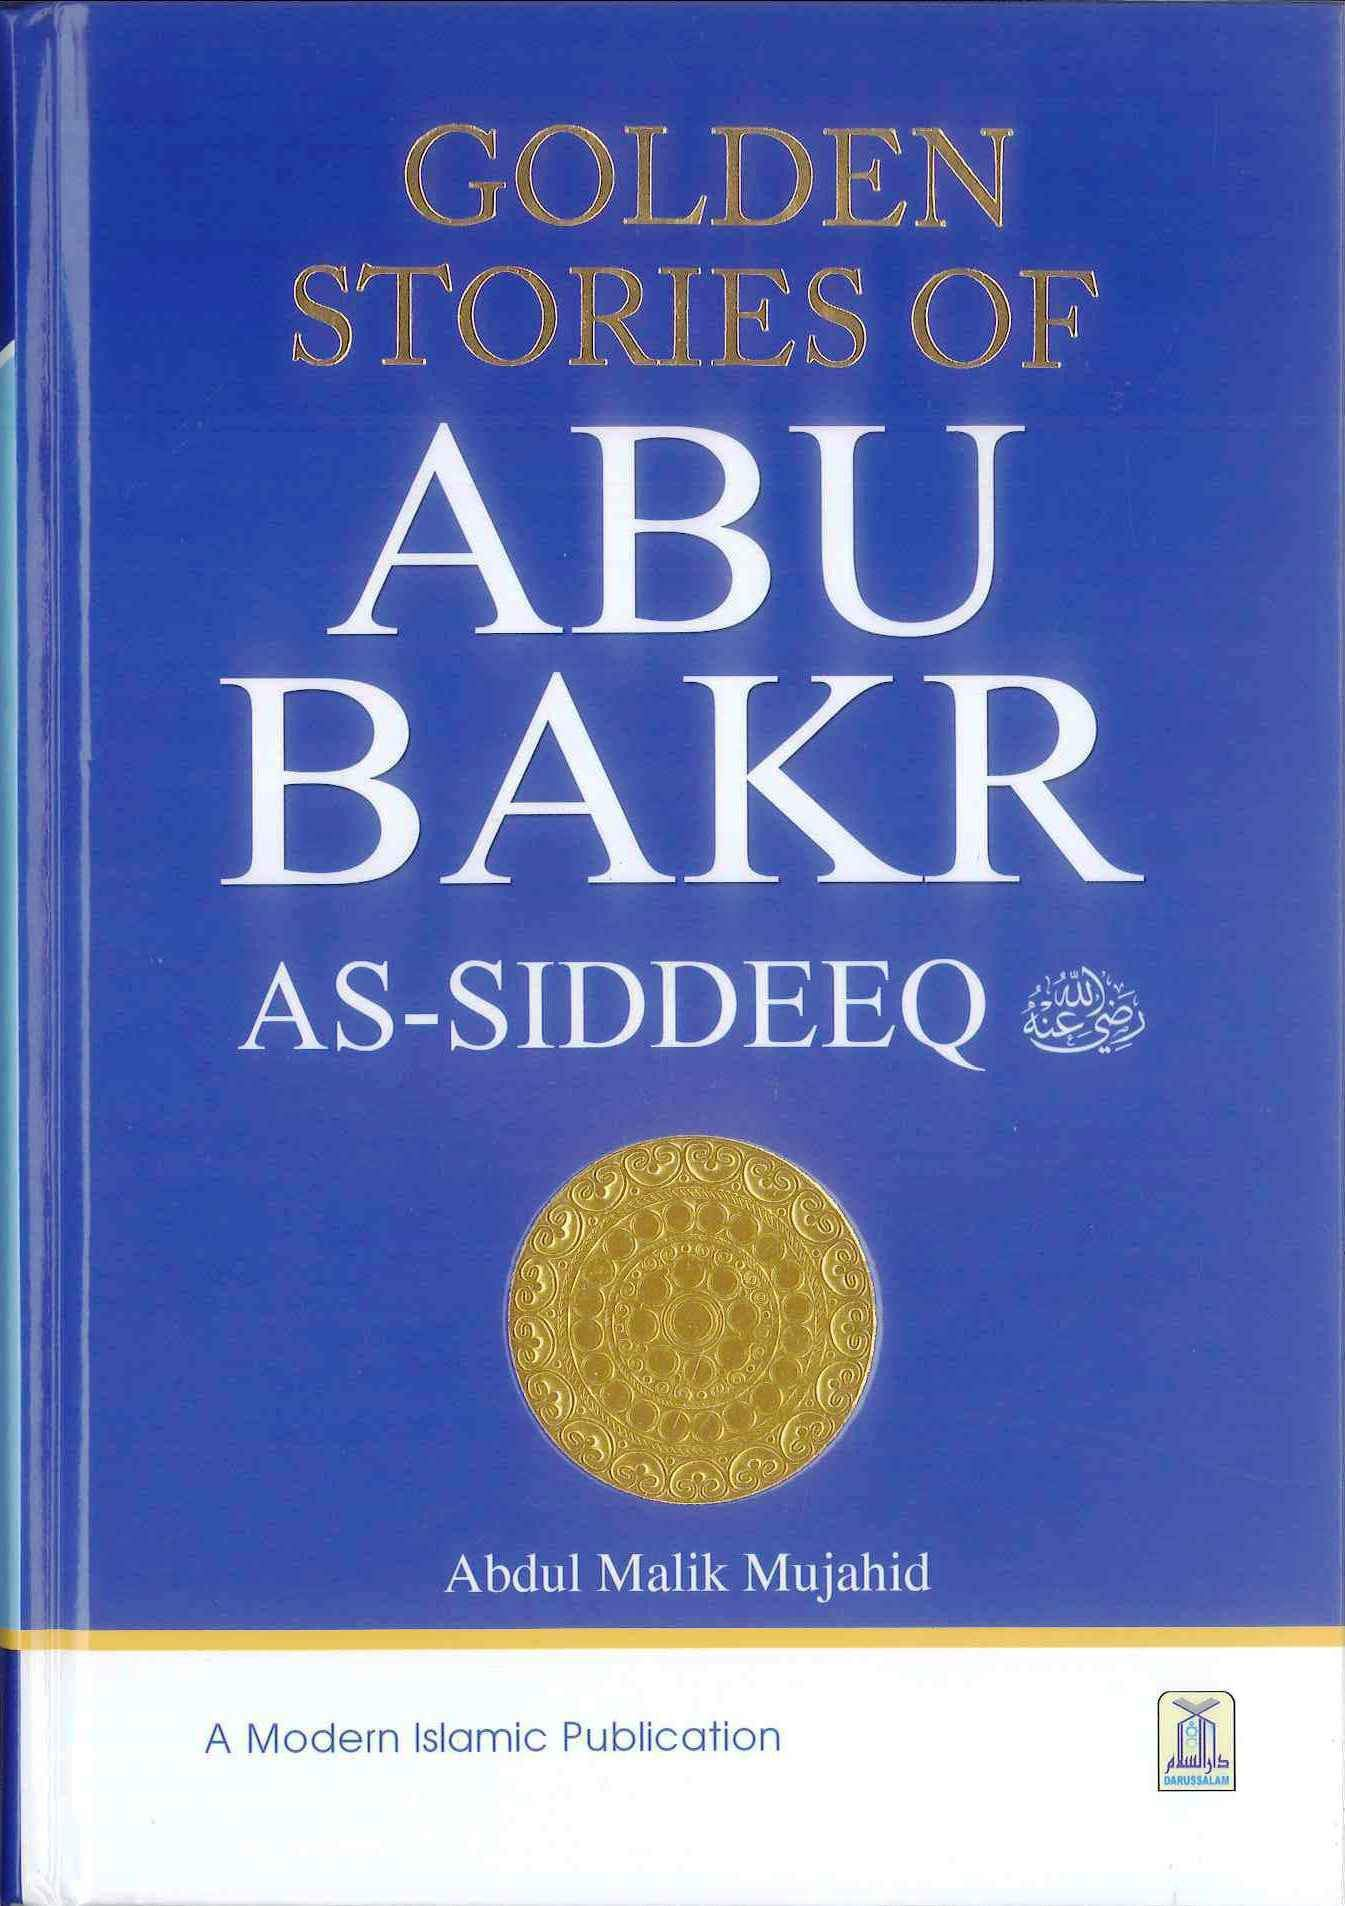 Golden Stories of Abu Bakr AsSiddeeq by Abdul Malik Mujahid